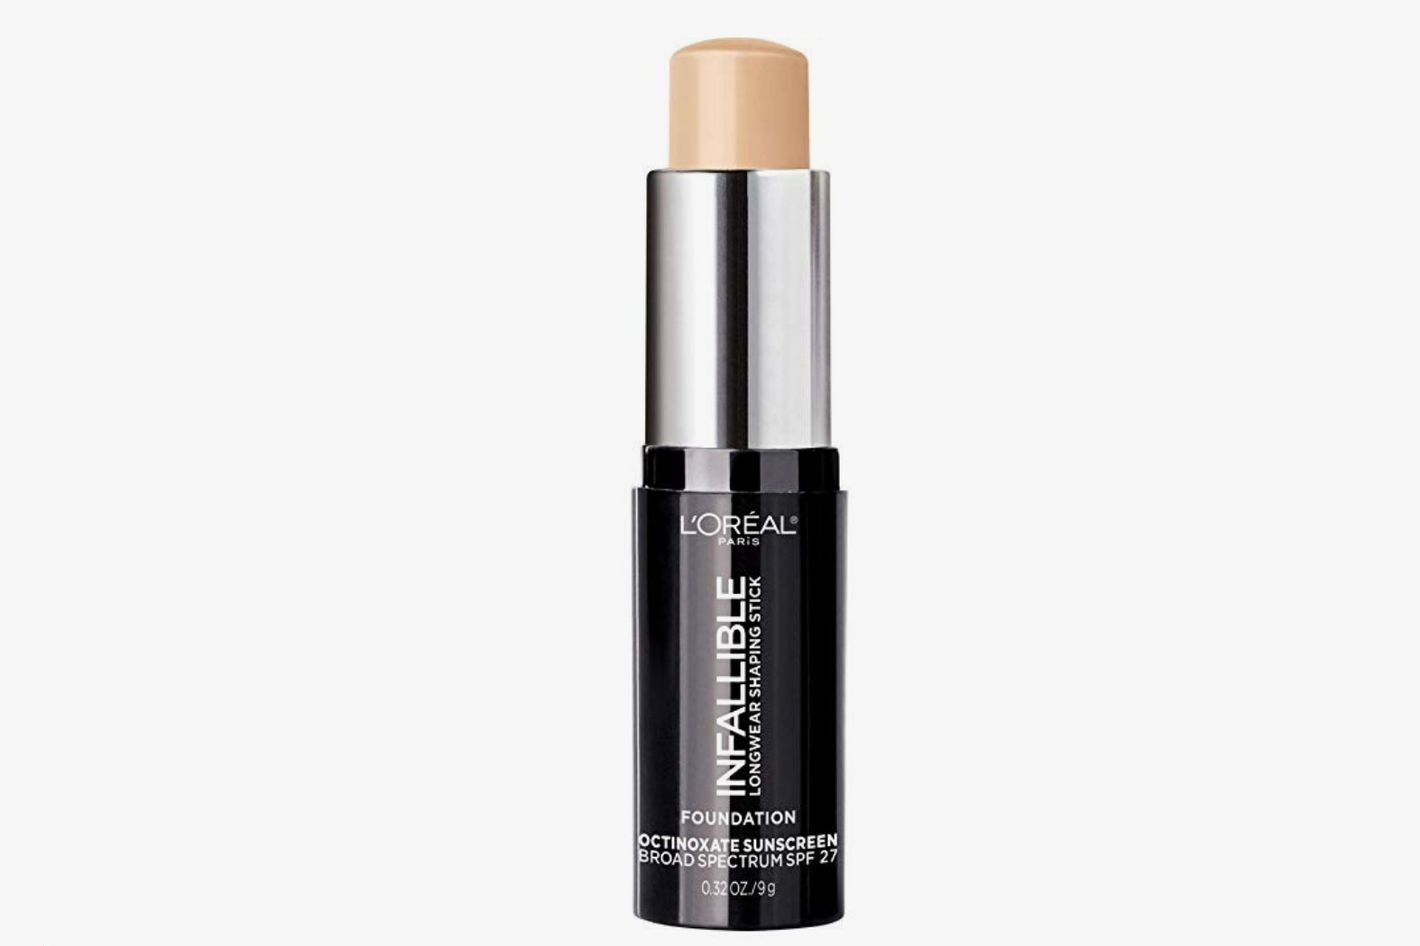 L'Oreal Paris Infallible Longwear Foundation